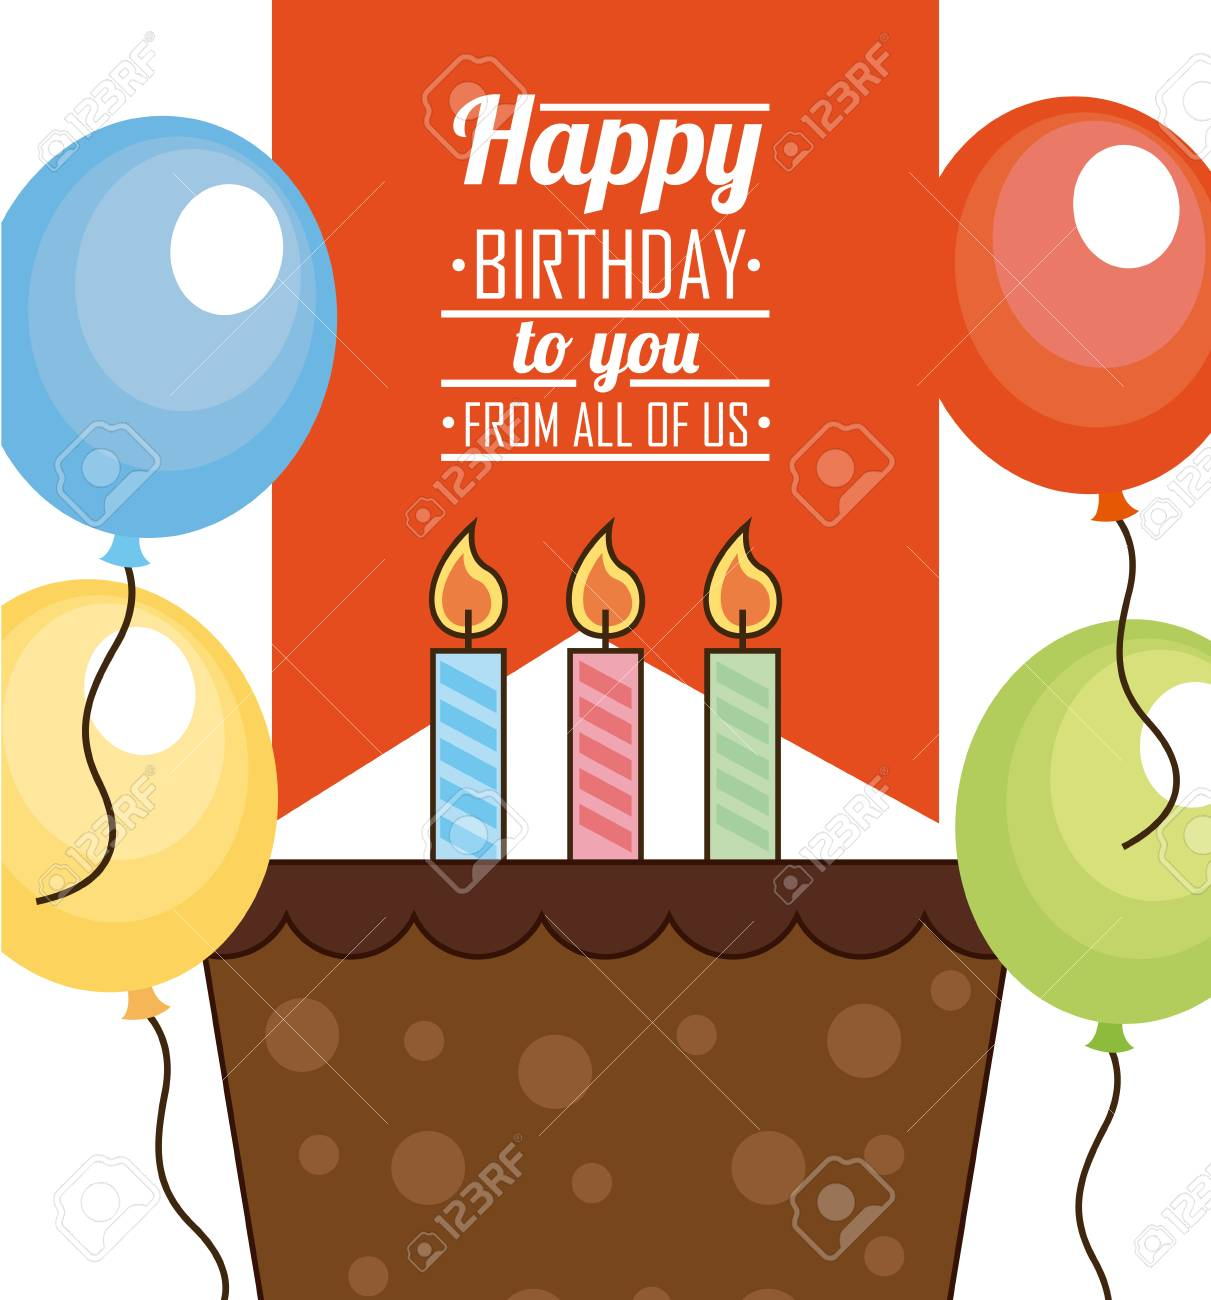 Happy Birthday Design Vector Illustration Eps10 Graphic Royalty Free Cliparts Vectors And Stock Illustration Image 38958233